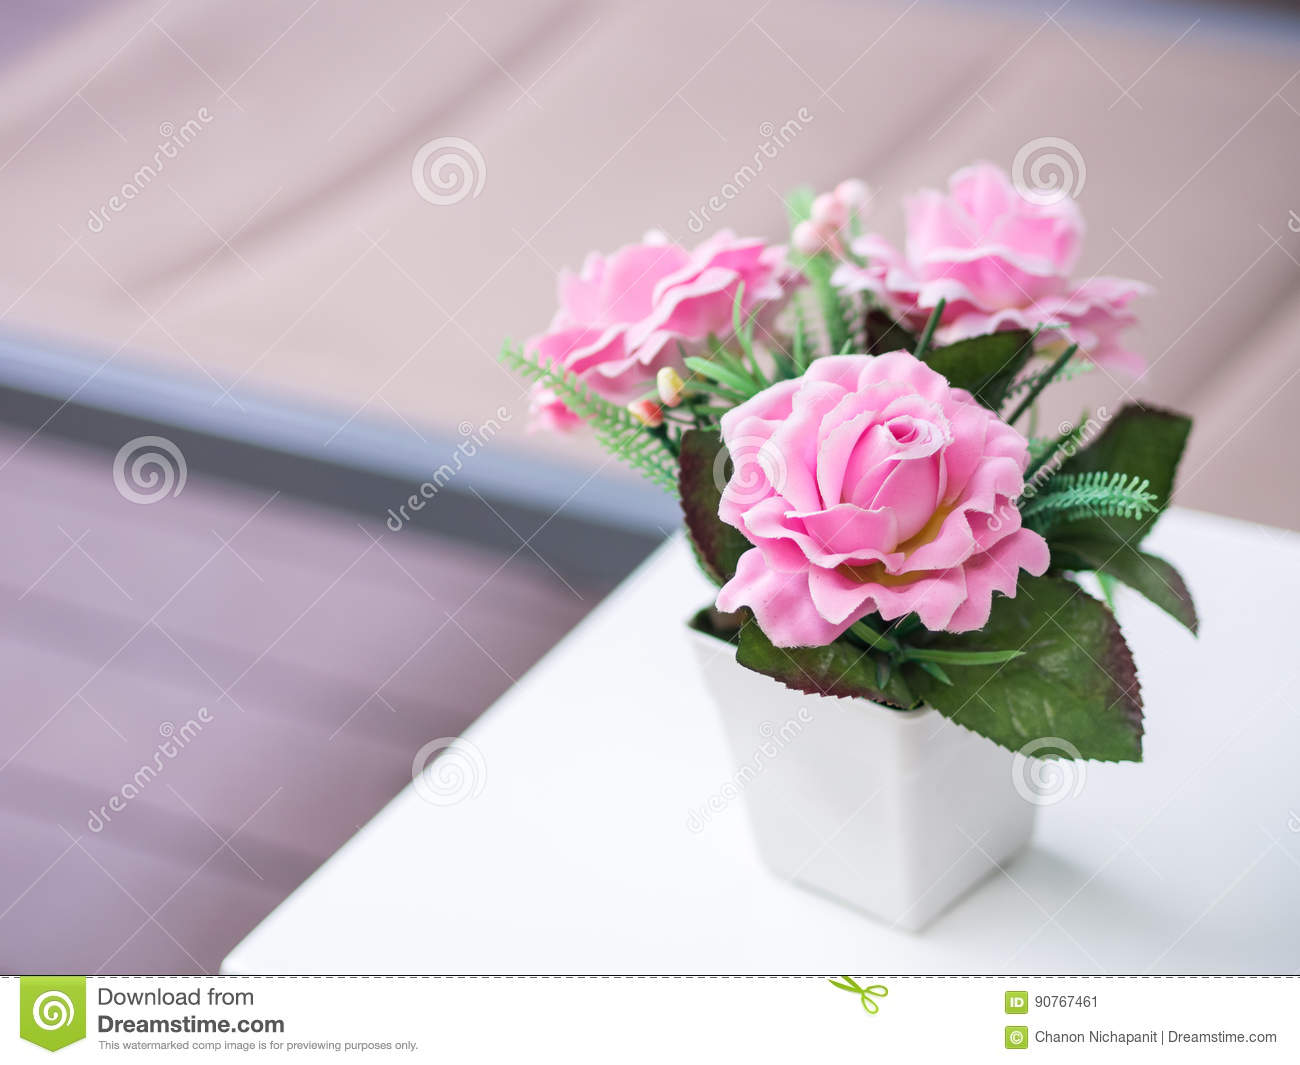 Bouquet Pink Roses In The White Vase Artificial Or Fake Flowers